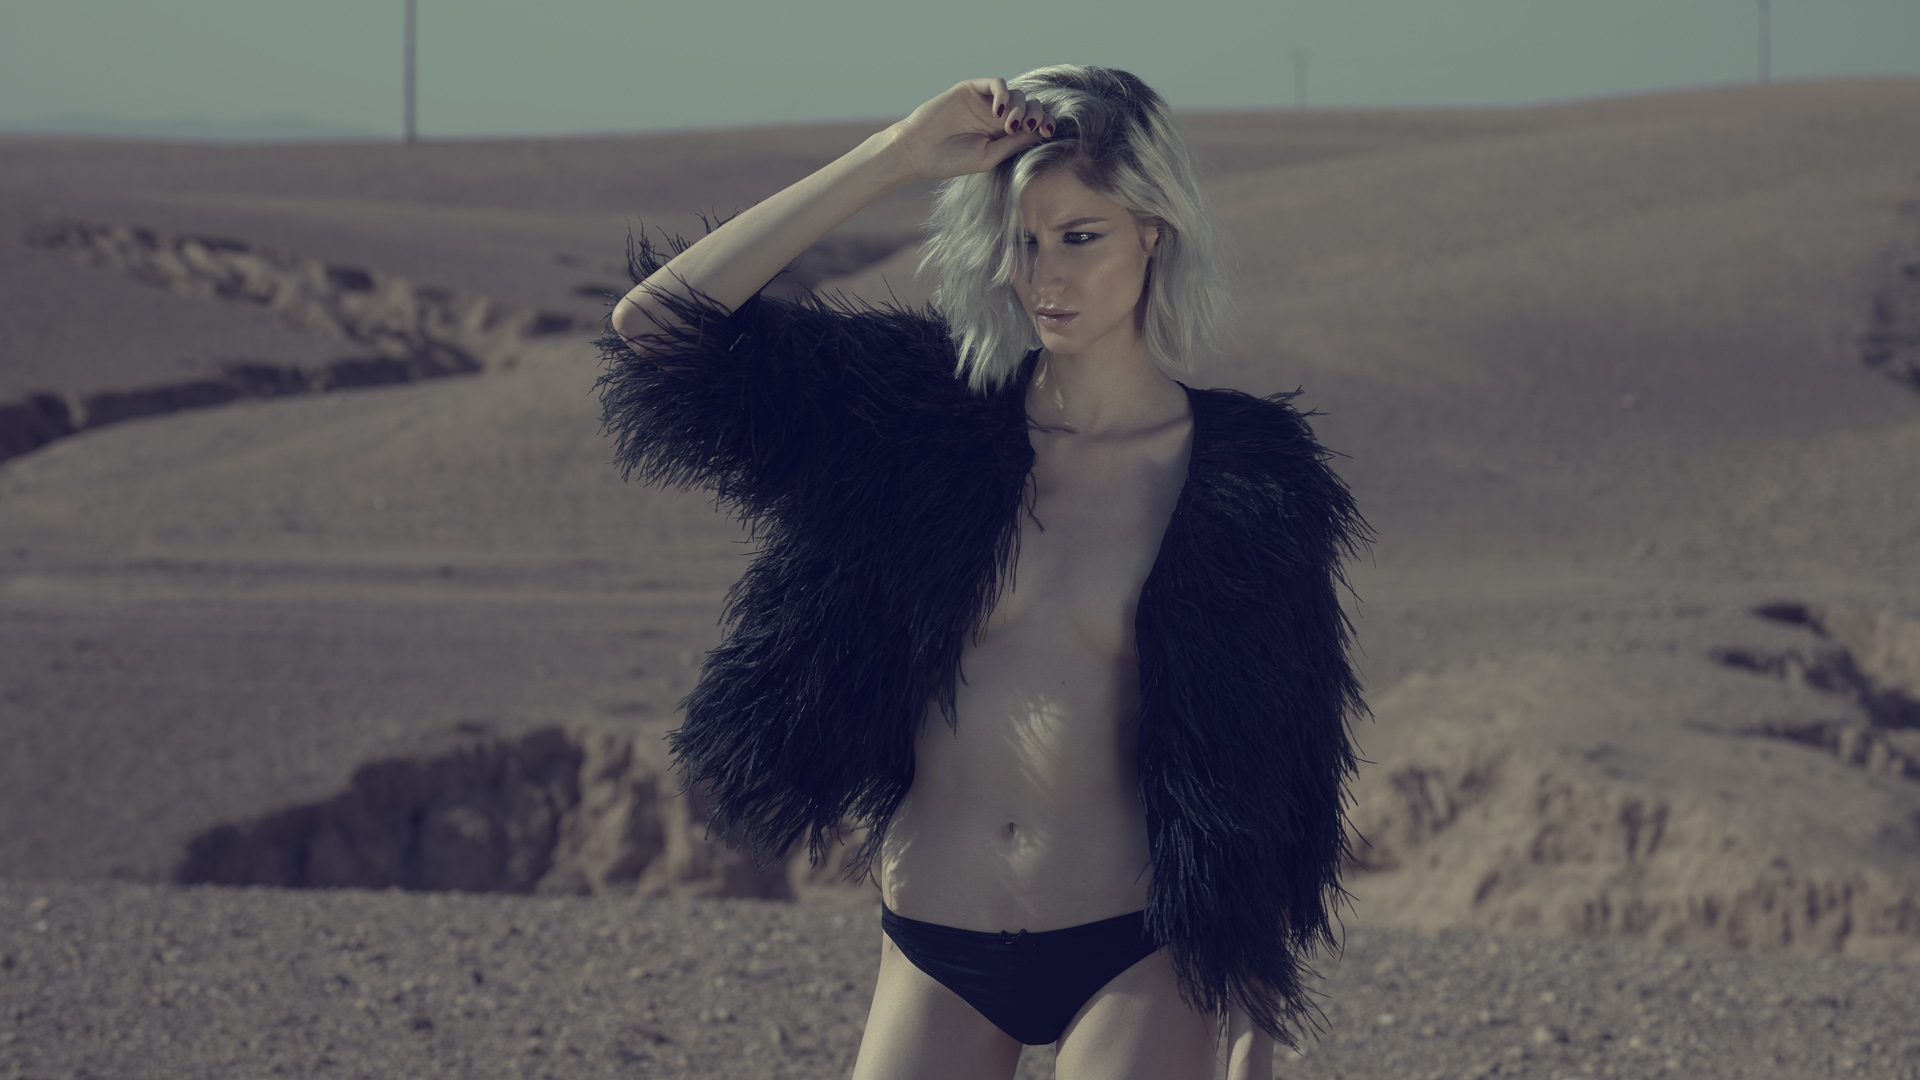 desert american wild lifestyle lingerie maje frederic mercier photographer one color